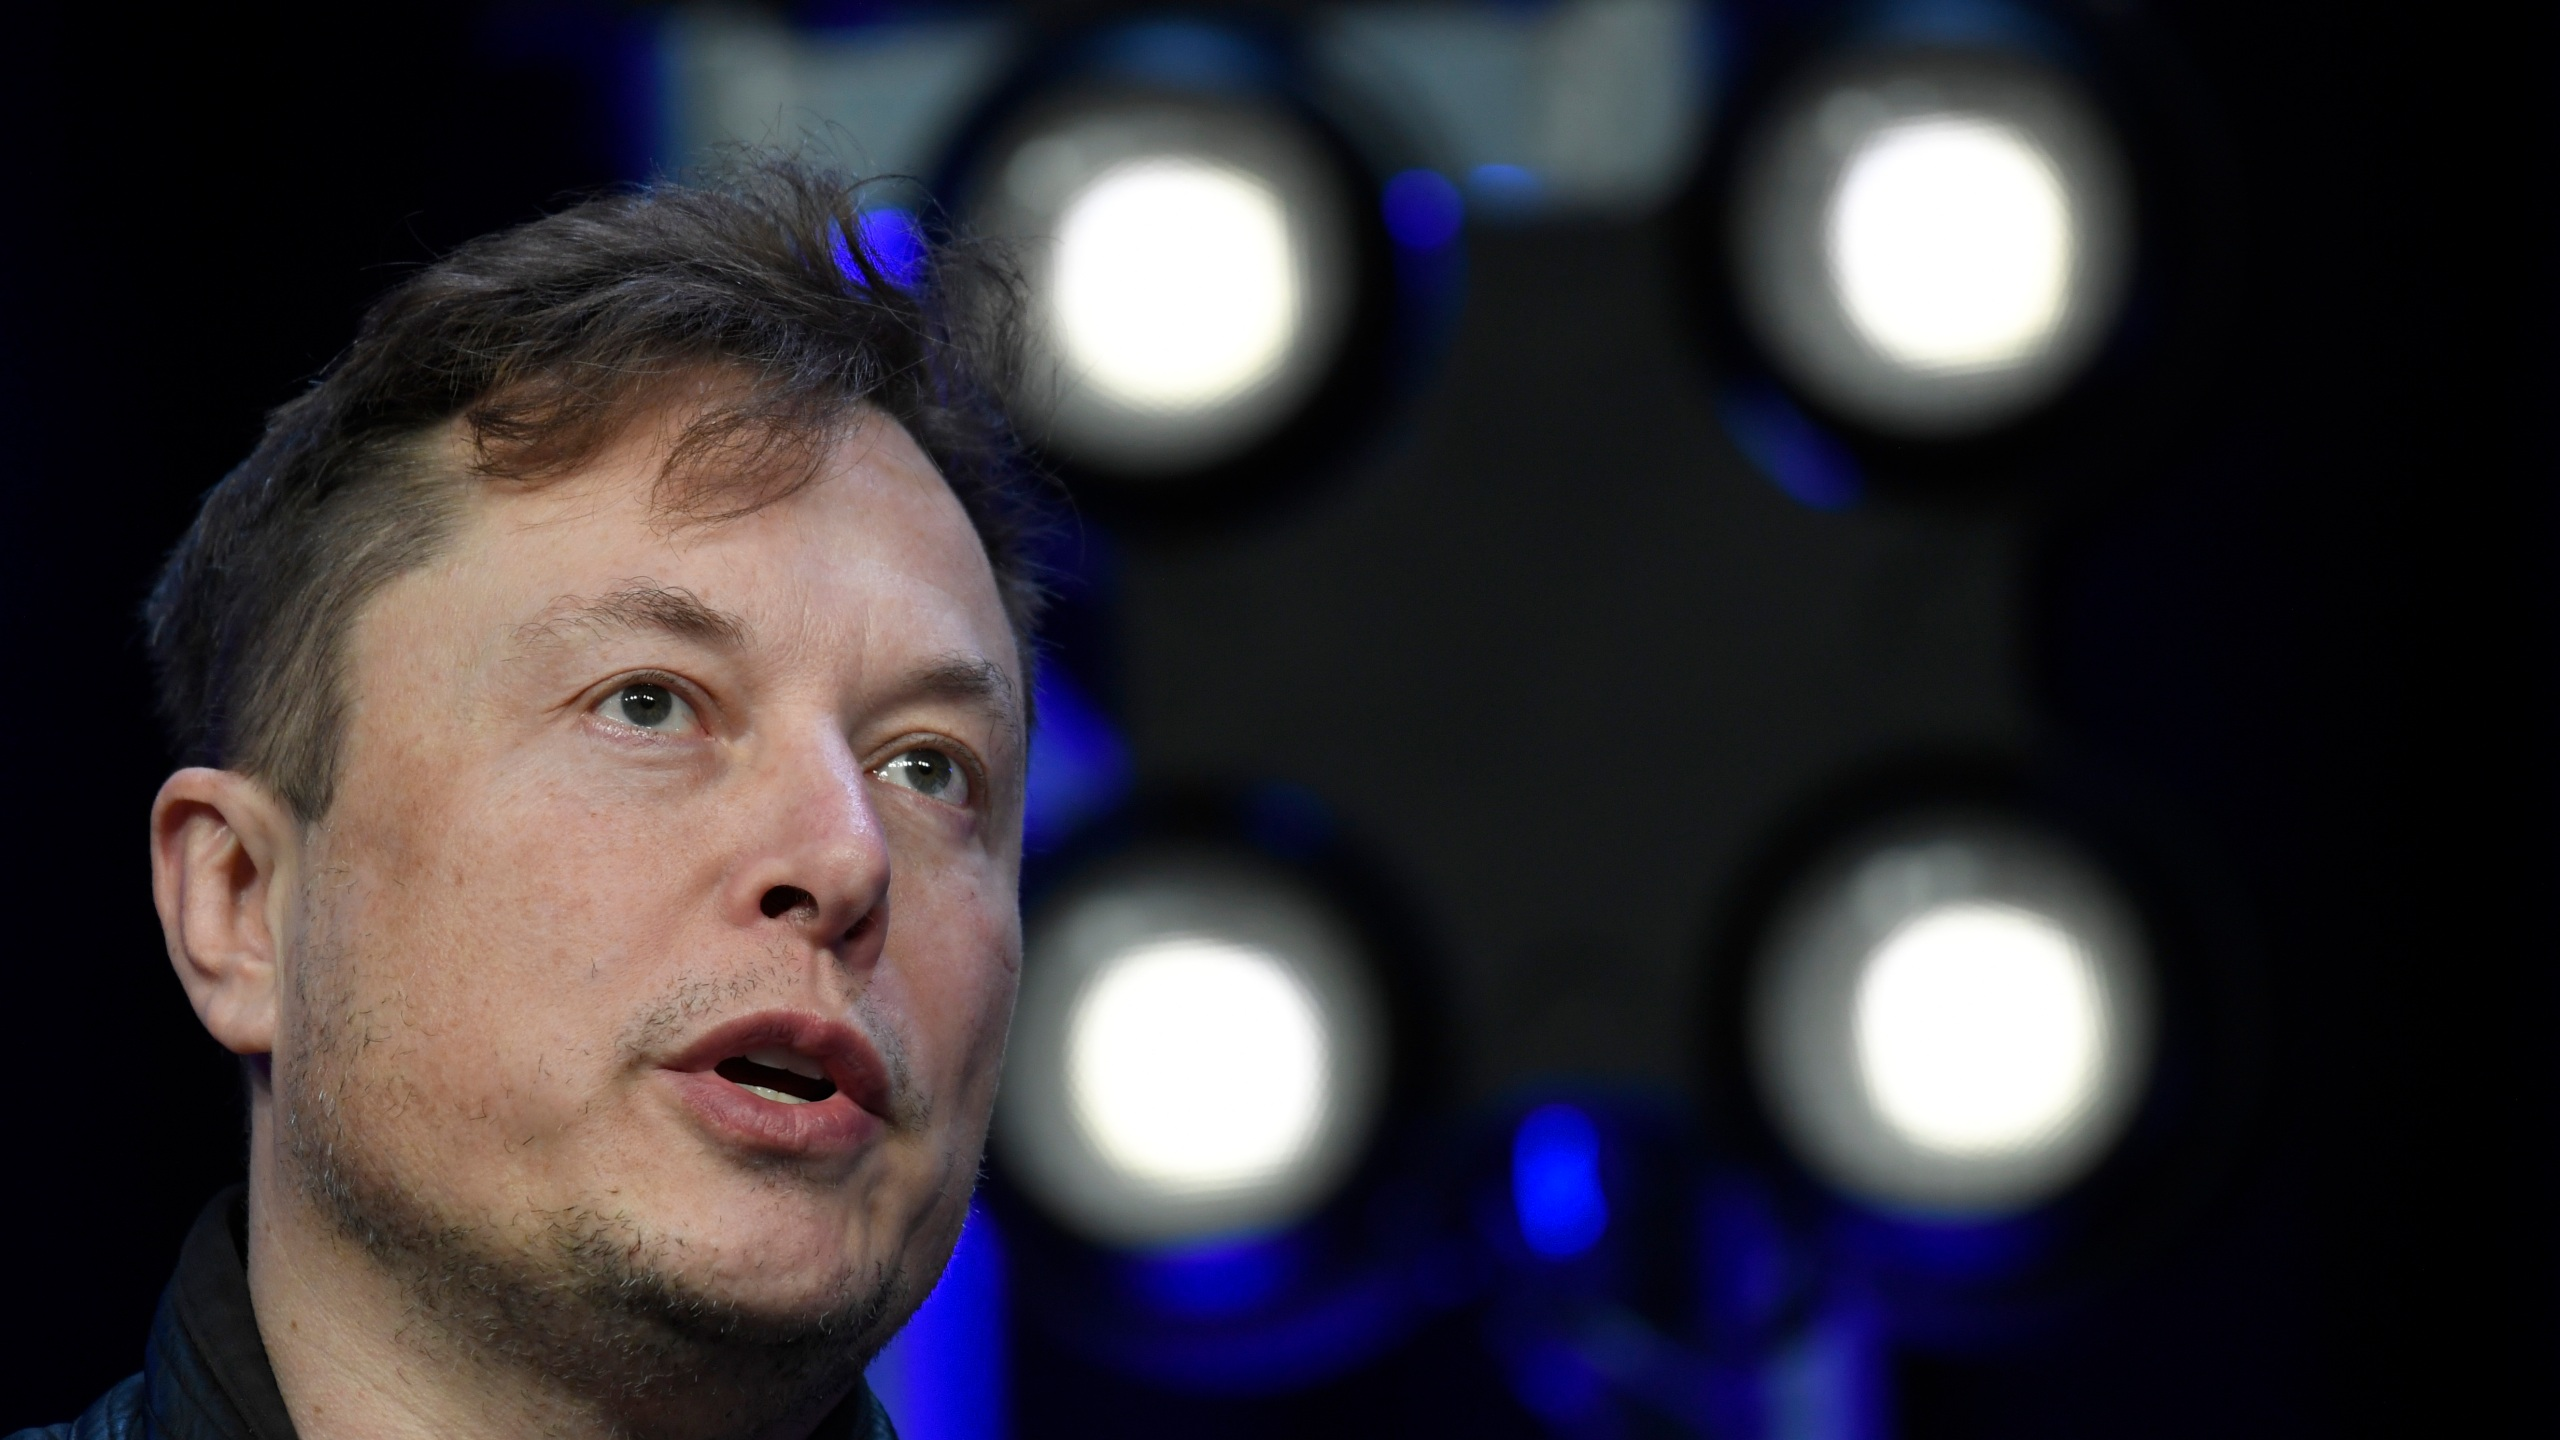 In this March 9, 2020, file photo, Tesla and SpaceX Chief Executive Officer Elon Musk speaks at the SATELLITE Conference and Exhibition in Washington. (AP Photo/Susan Walsh, File)